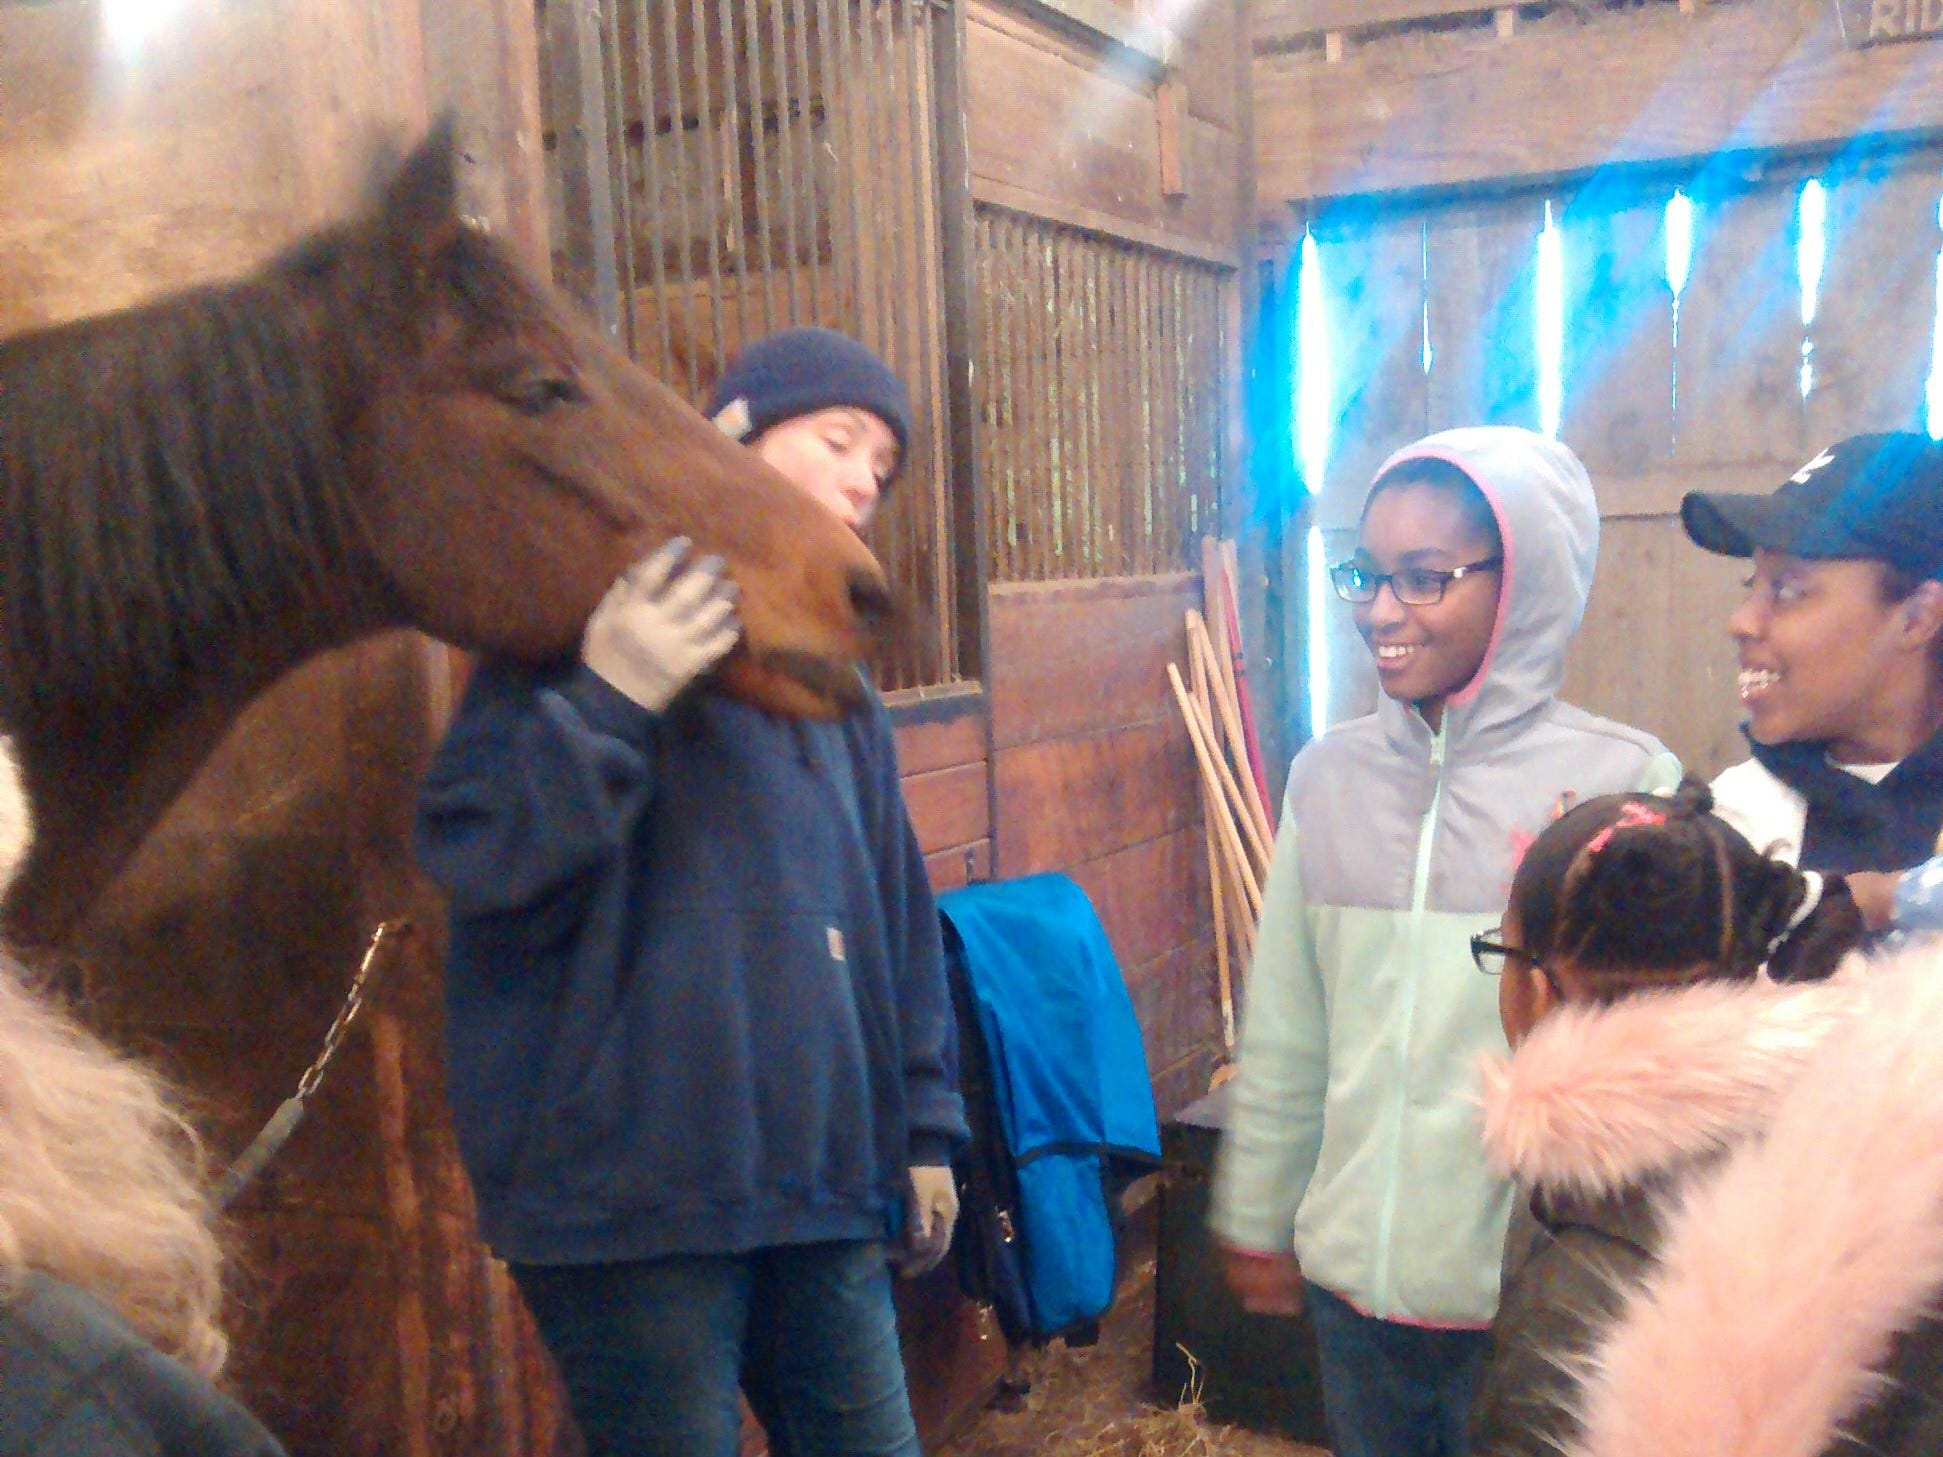 Youth Mission Outreach visitors get firsthand look at rescue horses